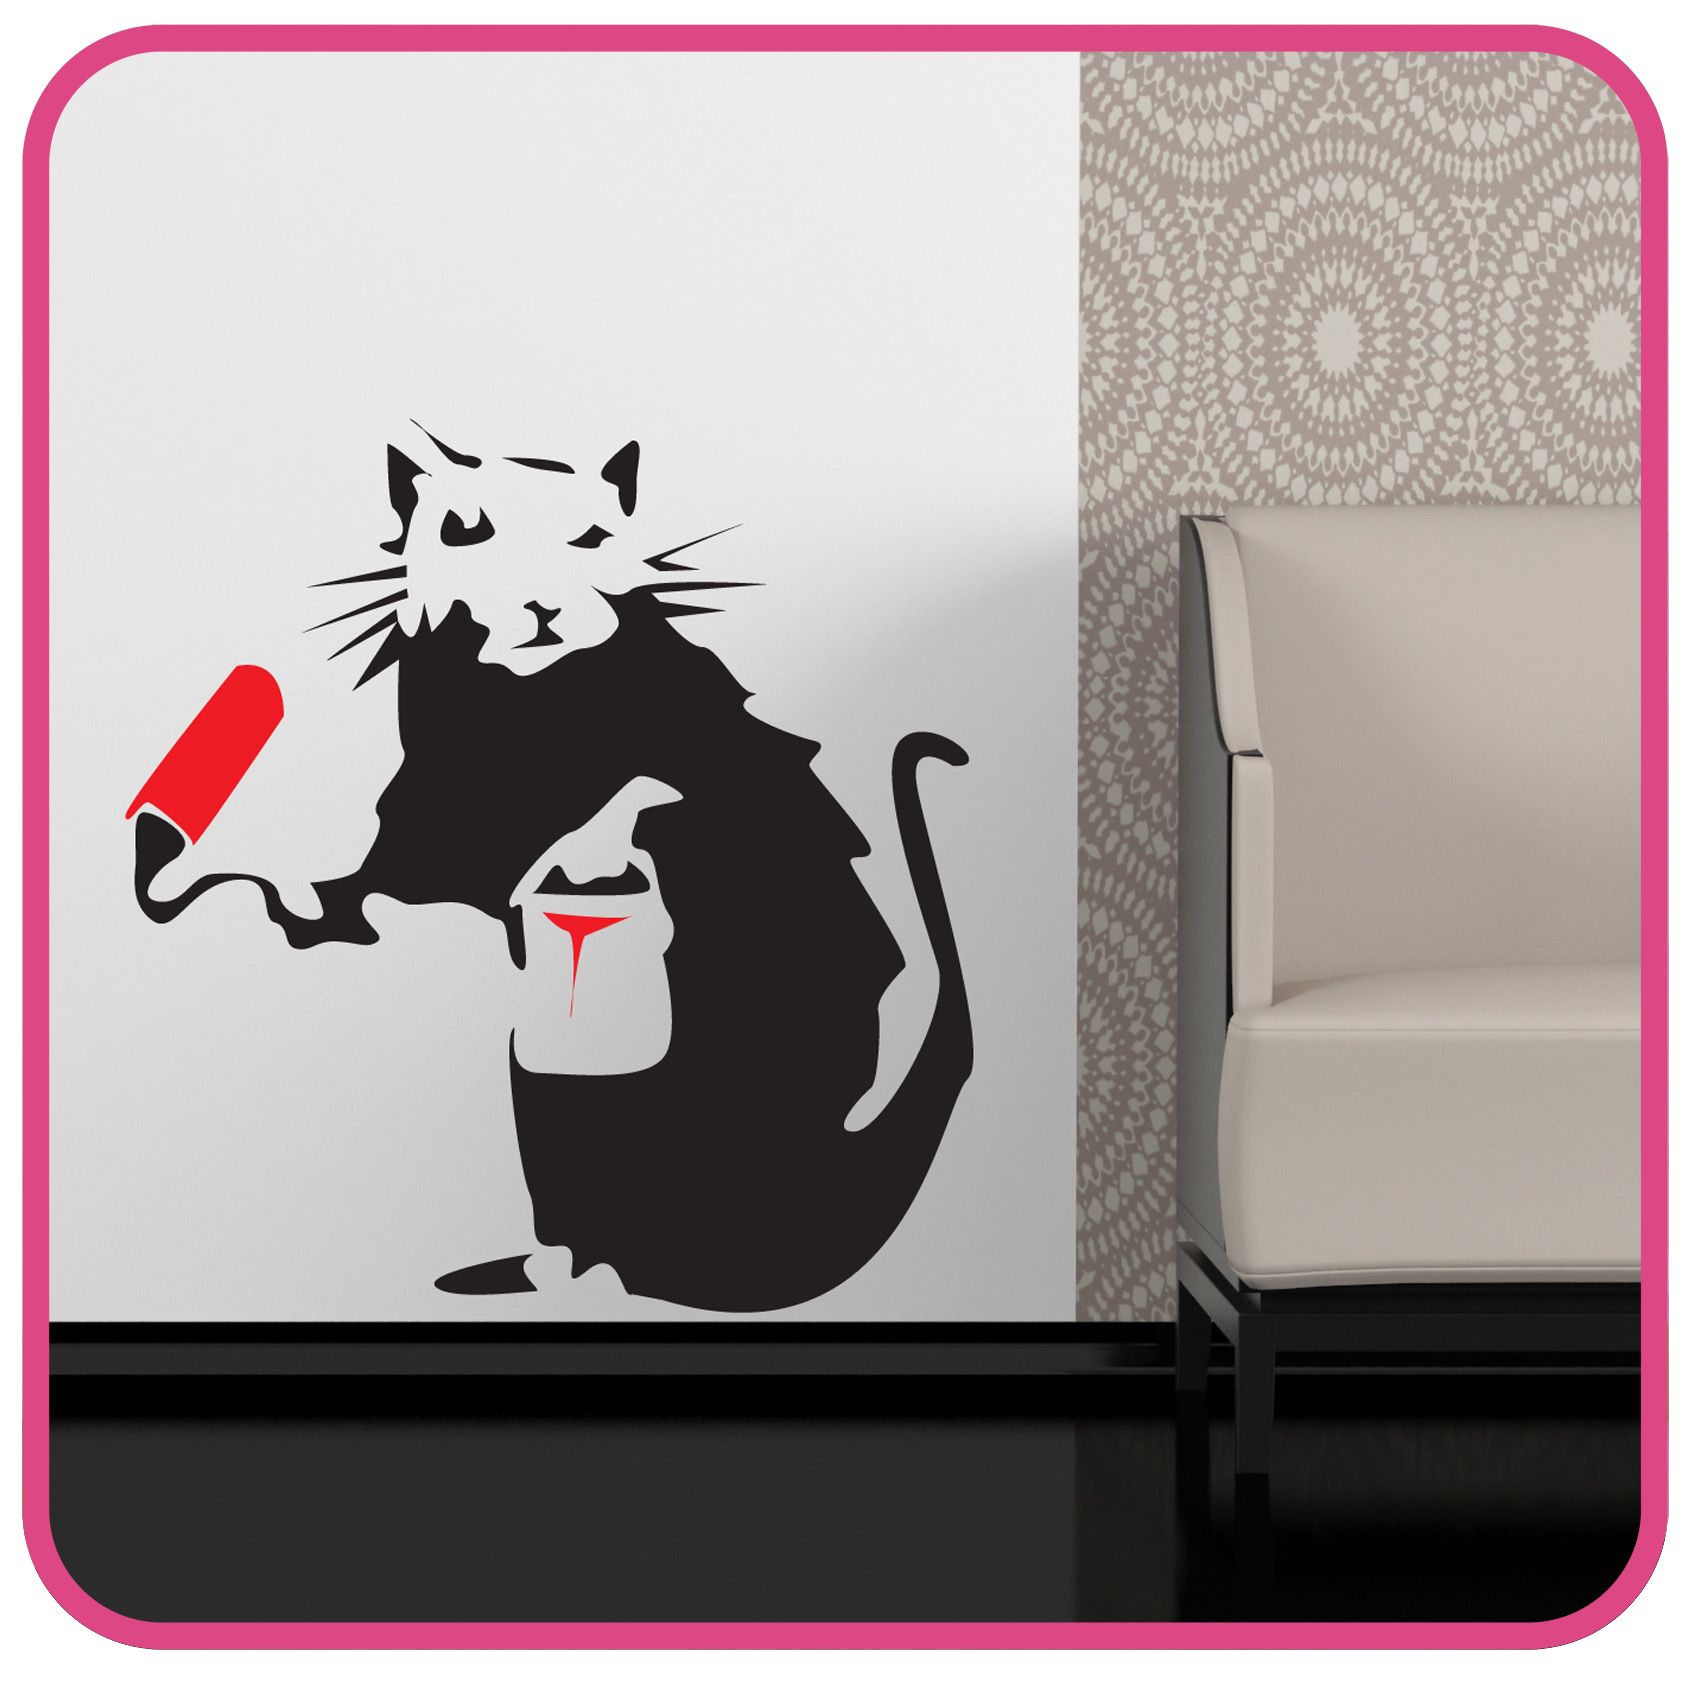 Person painting wall - Details About Banksy Style Painting Rat Wall Art Sticker Decal